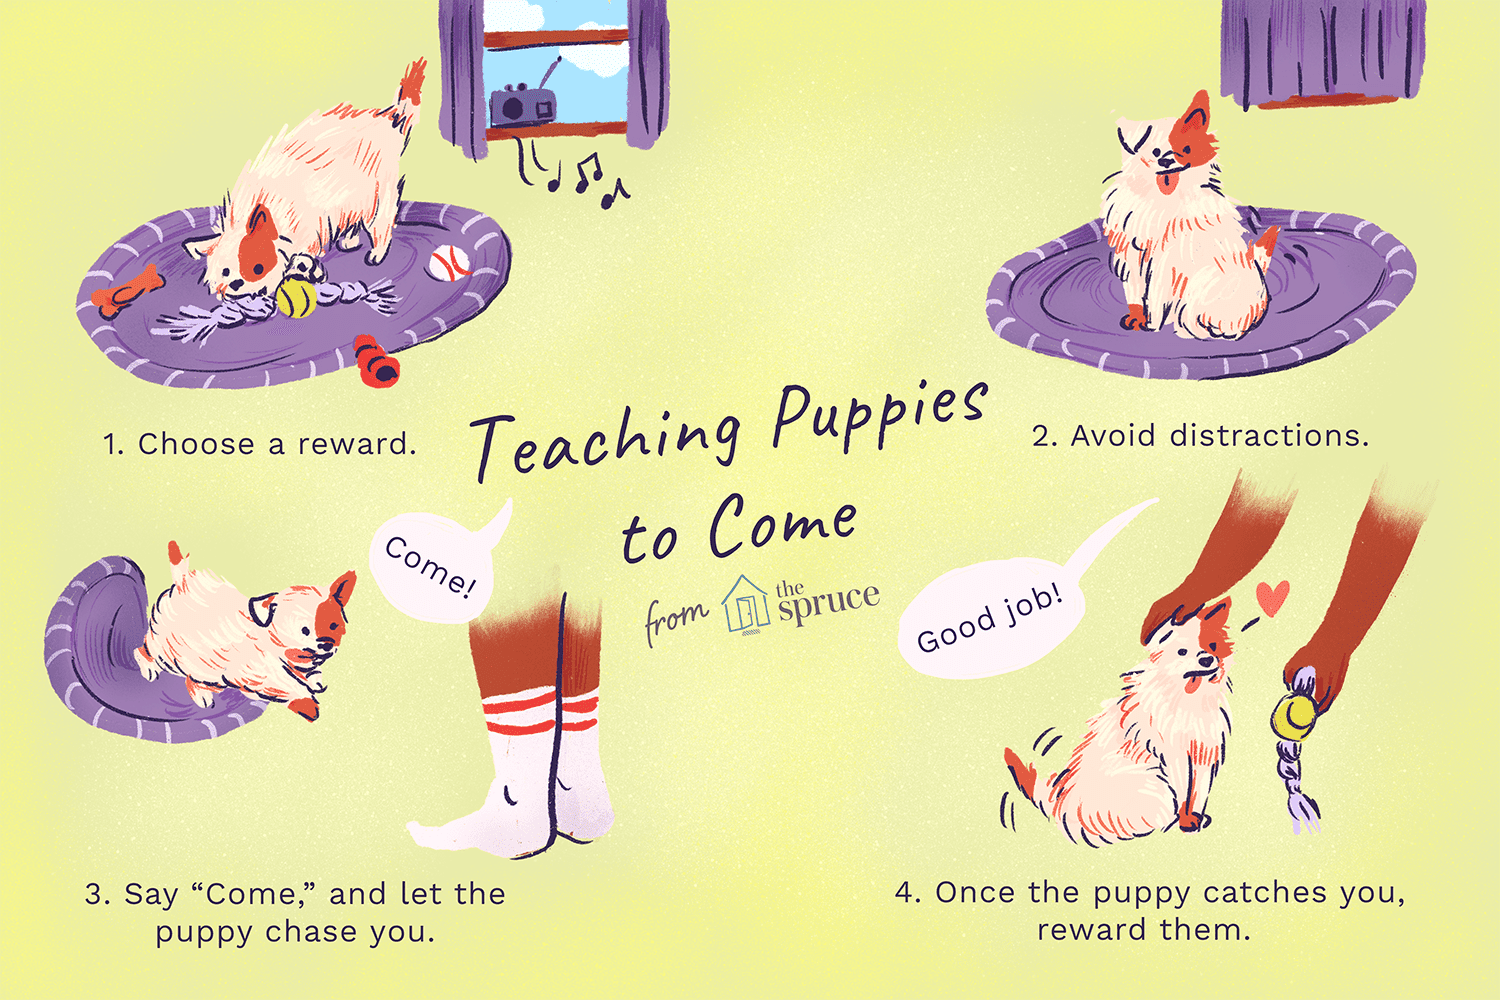 An illustration showing how to teach a puppy to come